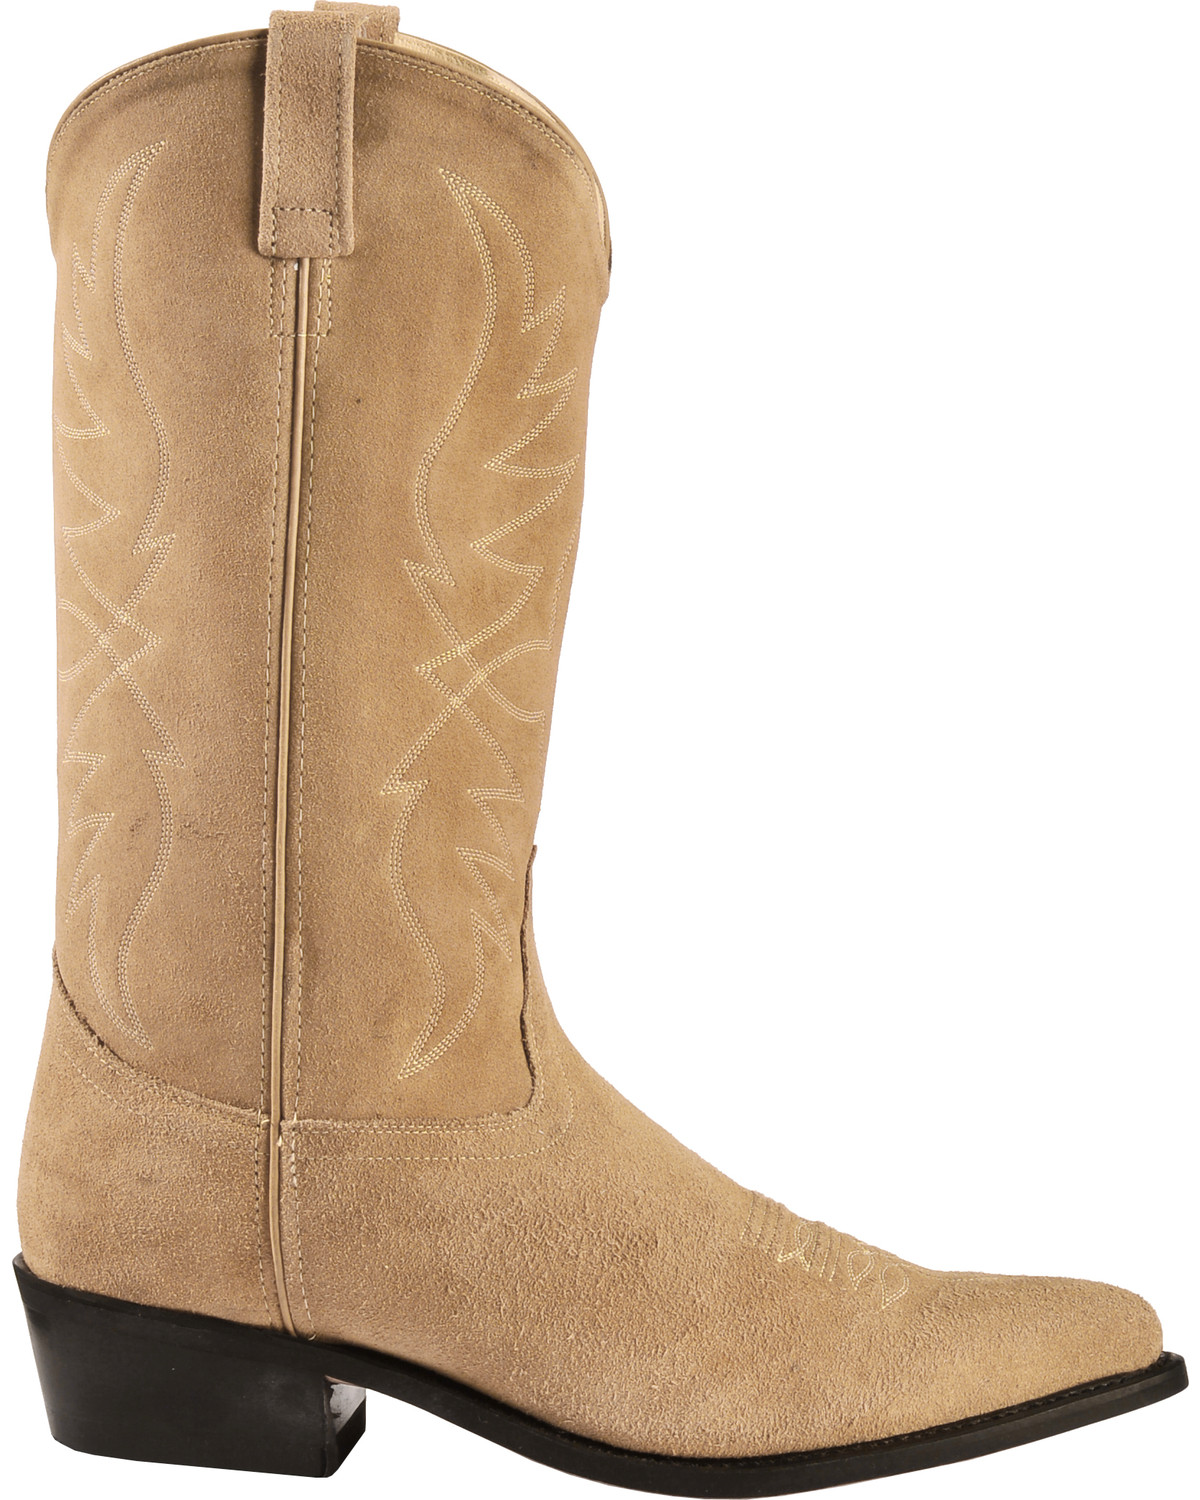 491cf163ac5 Old West Roughout Suede Cowboy Boots - Pointed Toe